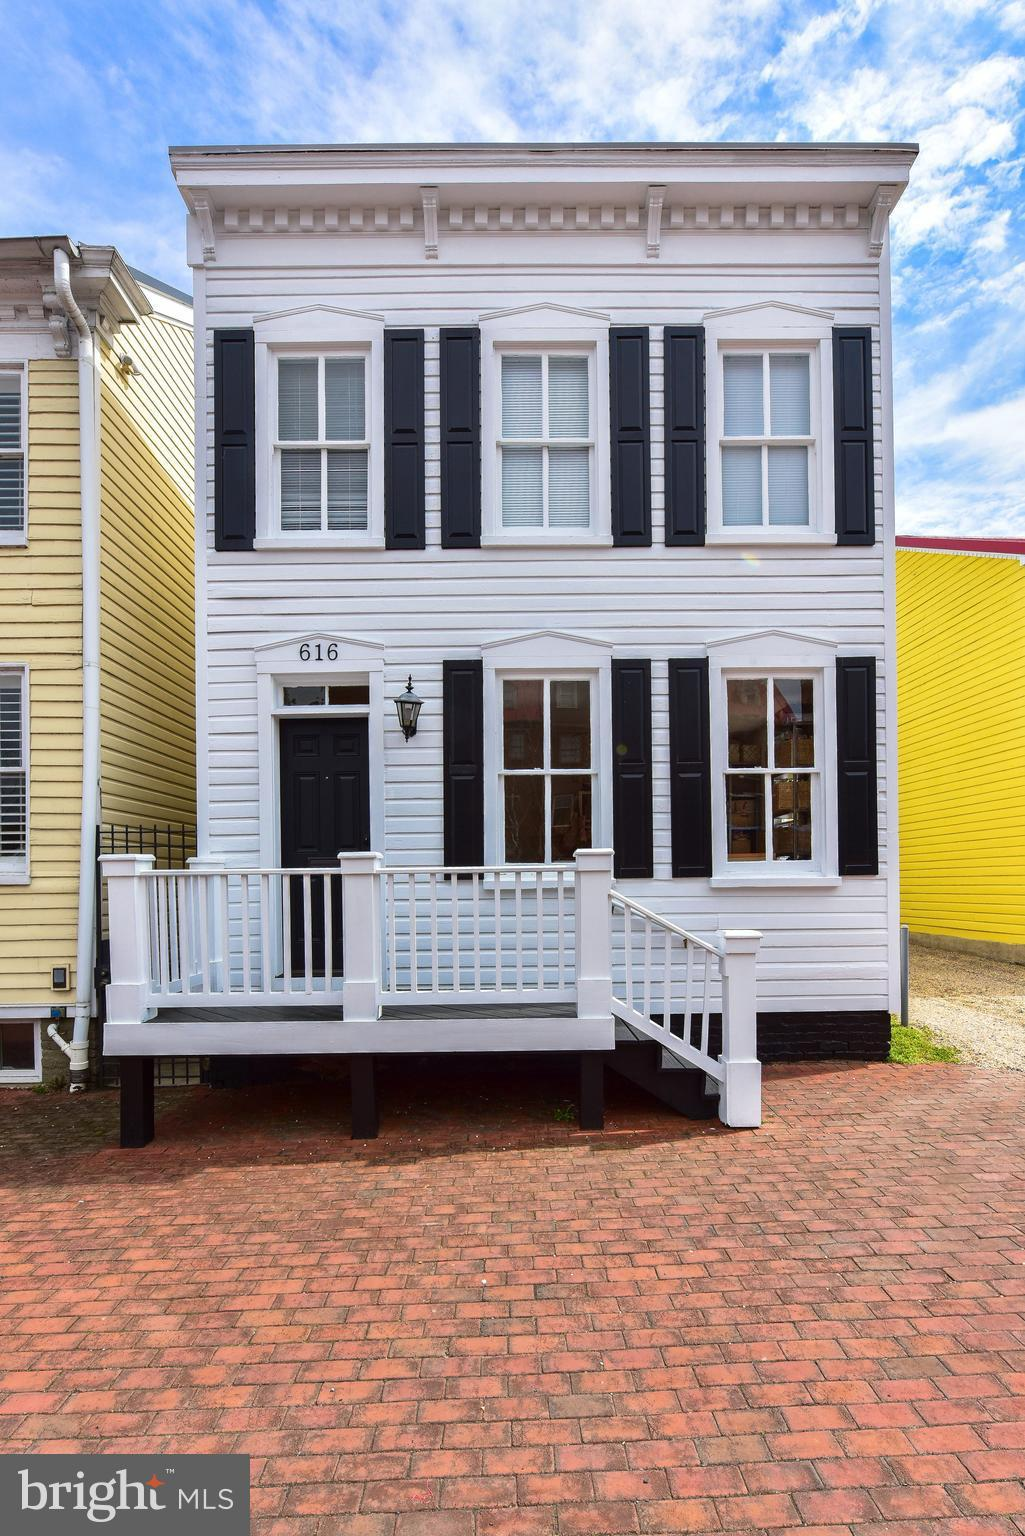 LOCATED IN THE HEART OF OLD TOWN, THIS BRIGHT AND SUNNY FREE-STANDING TH CAN SERVE AS AN OFFICE OR A HOME OR A COMBINATION THEREOF. THE DEEP LOT OFFERS 6 OFF-STREET PARKING SPACES. THE LOT PROVIDES EXCELLENT EXPANSION POTENTIAL. EASY COMMUTE TO 495, METRO AND DOWNTOWN WASHINGTON.